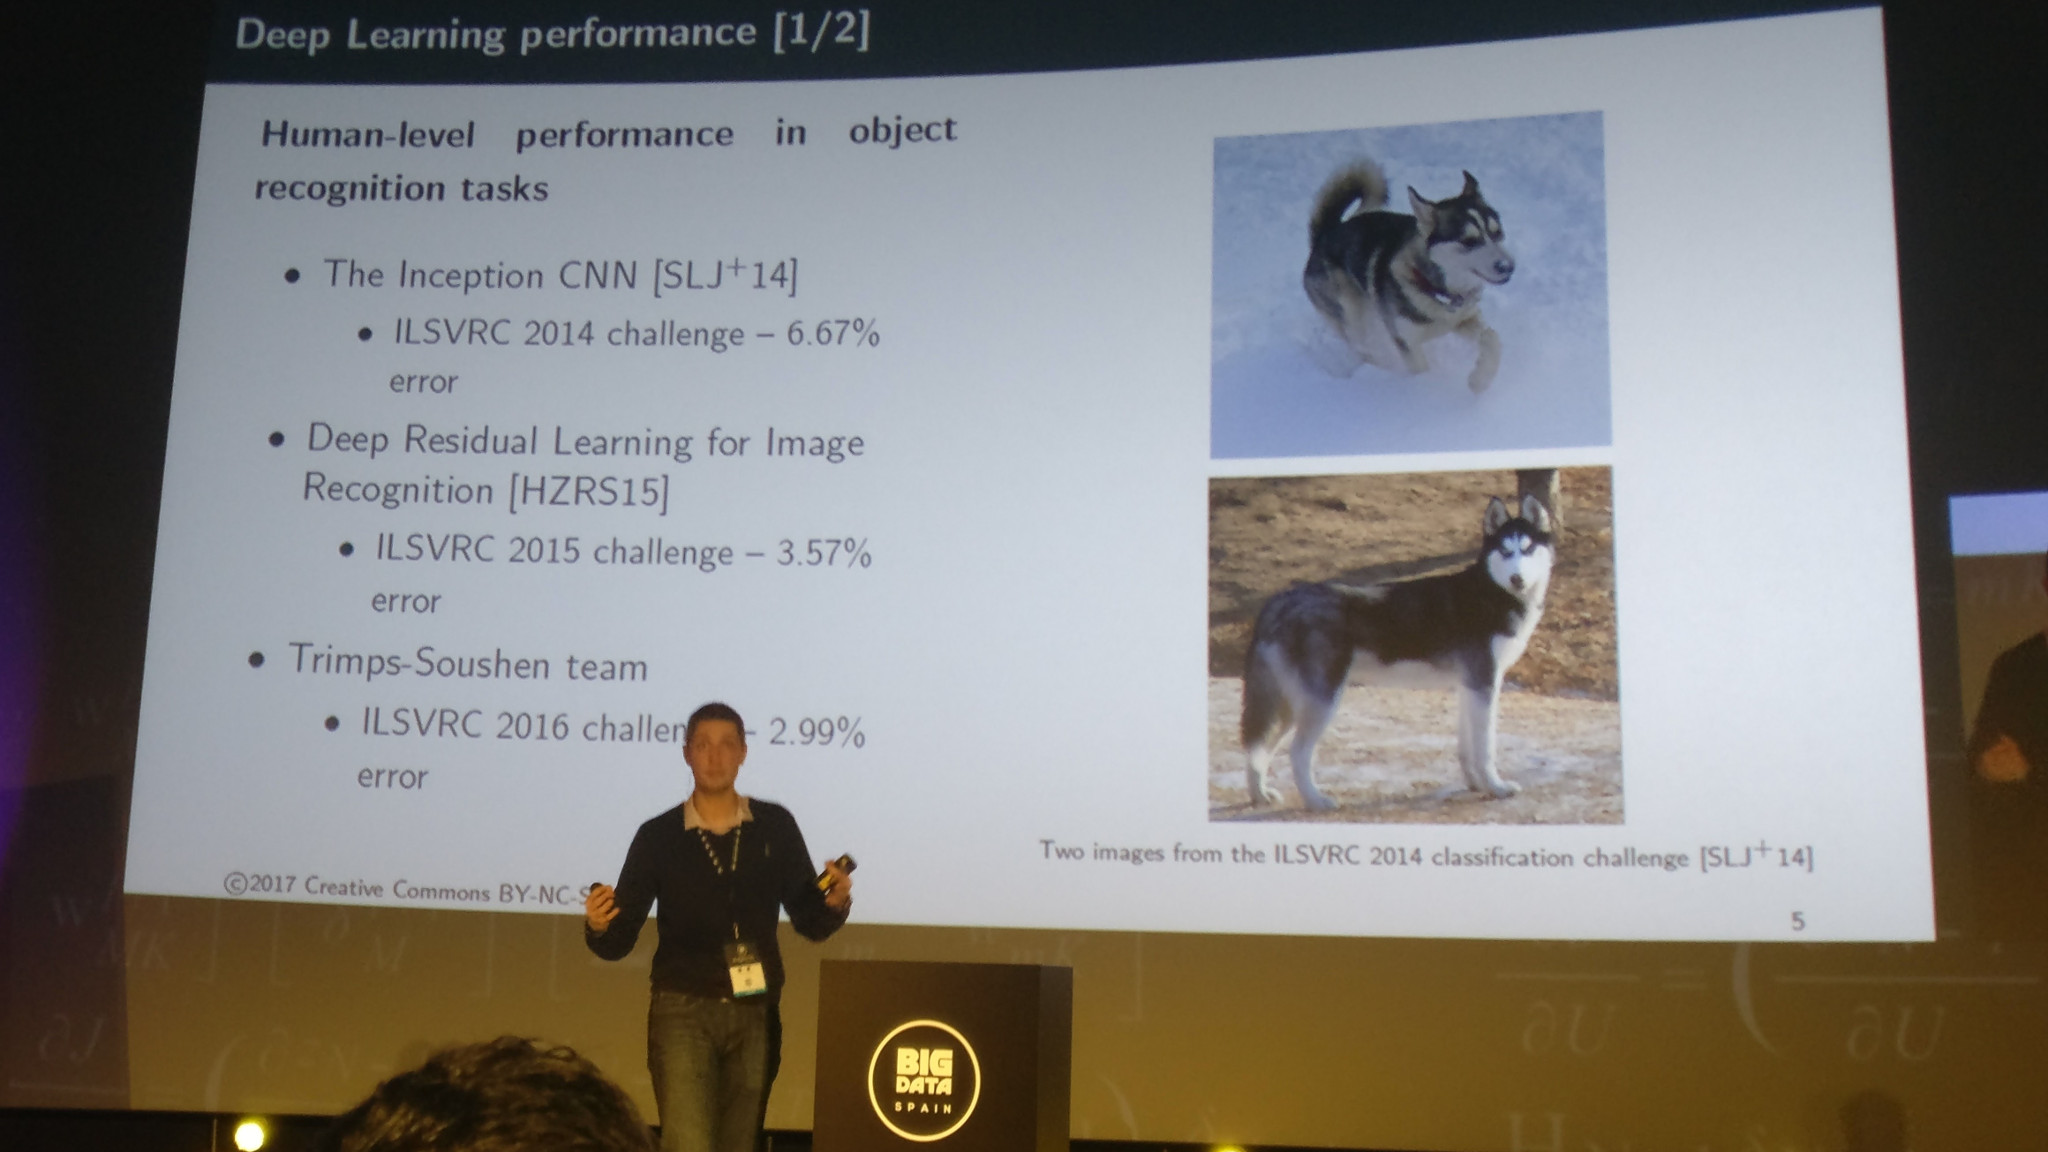 Deep Learning performance vs human-level performance in object recognition tasks